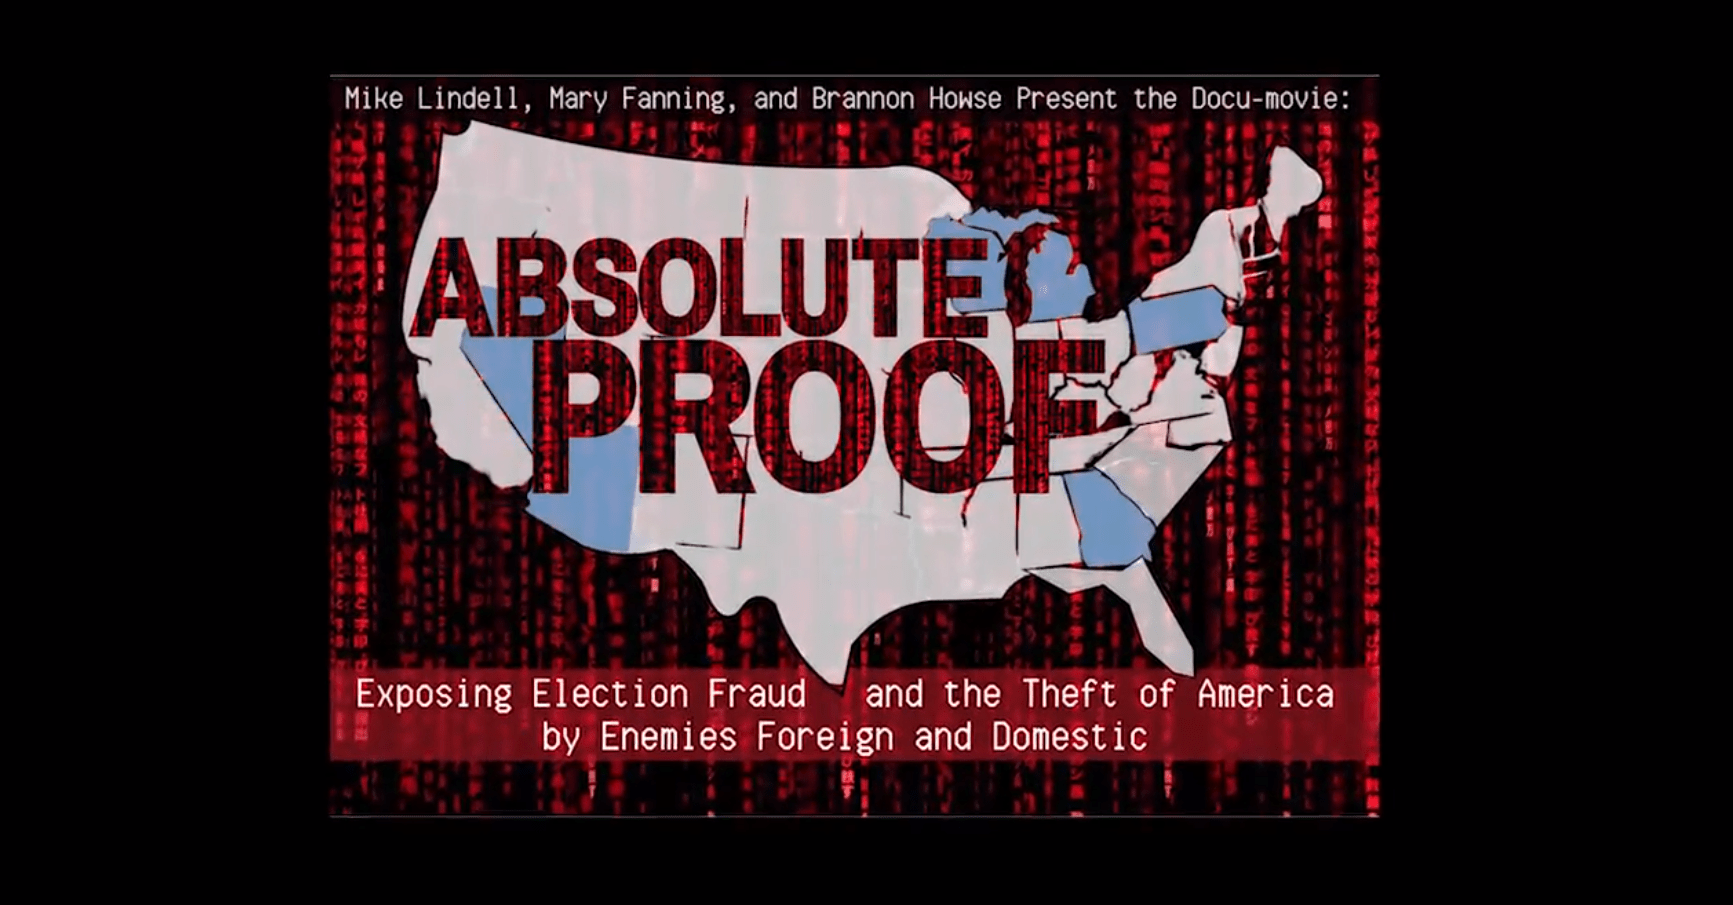 WATCH: ABSOLUTE PROOF DOCUMENTARY WITH MIKE LINDELL- NEVER BEFORE SEEN EVIDENCE ON ELECTION FRAUD